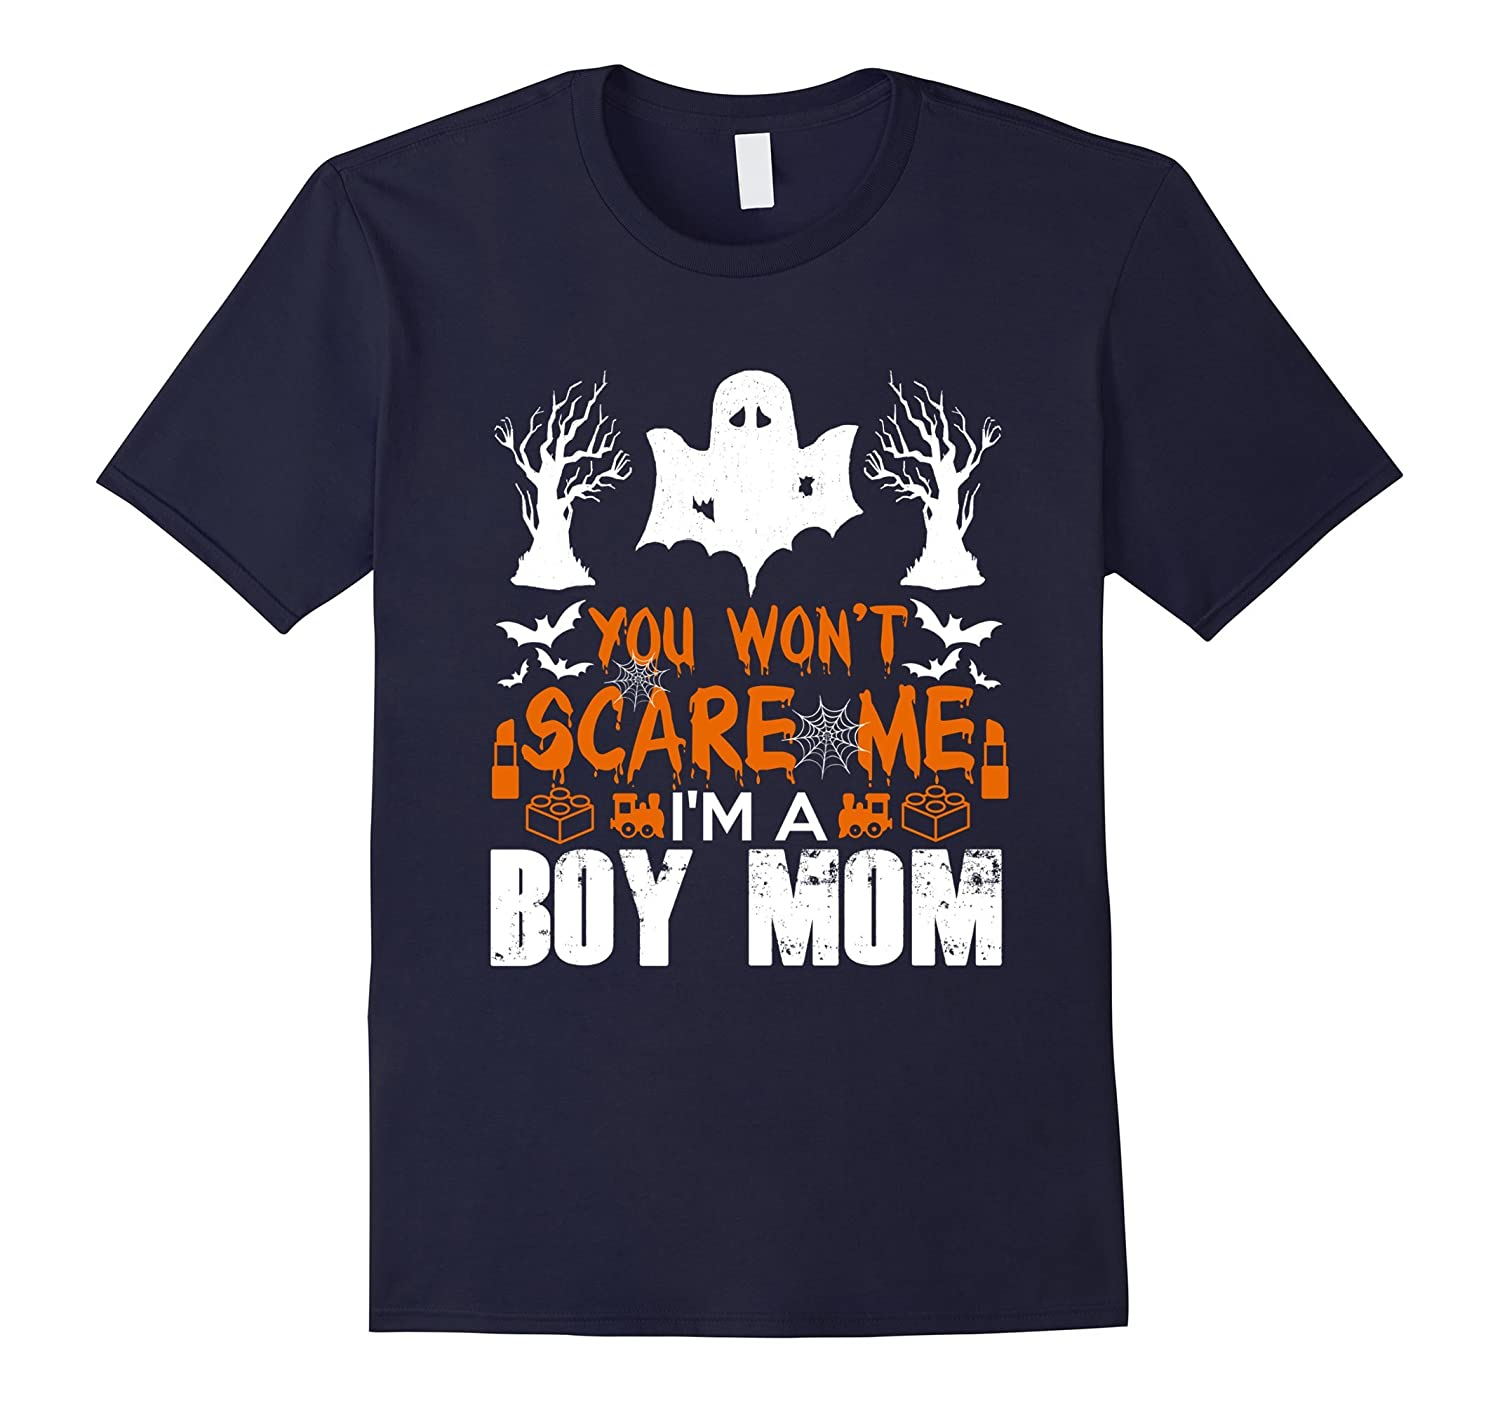 You Won't Scare Me I'm A Boy Mom | Funny Halloween T-Shirt-CL